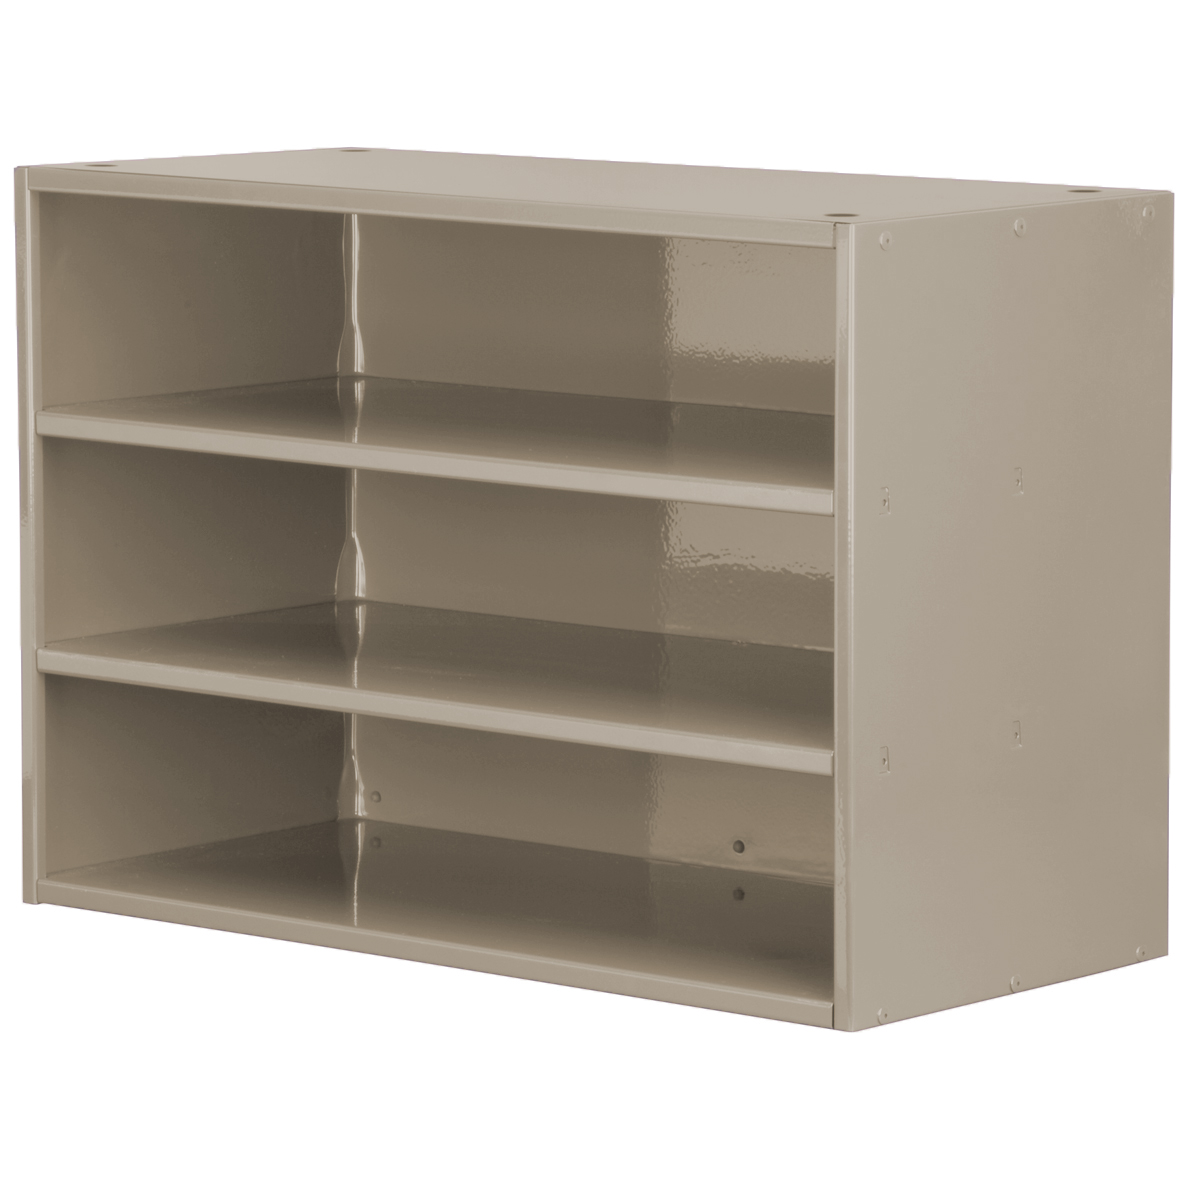 Item DISCONTINUED by Manufacturer.  Modular Cabinet, 23x11x16, no Drawers, Putty (AD2311P).  This item sold in carton quantities of 1.